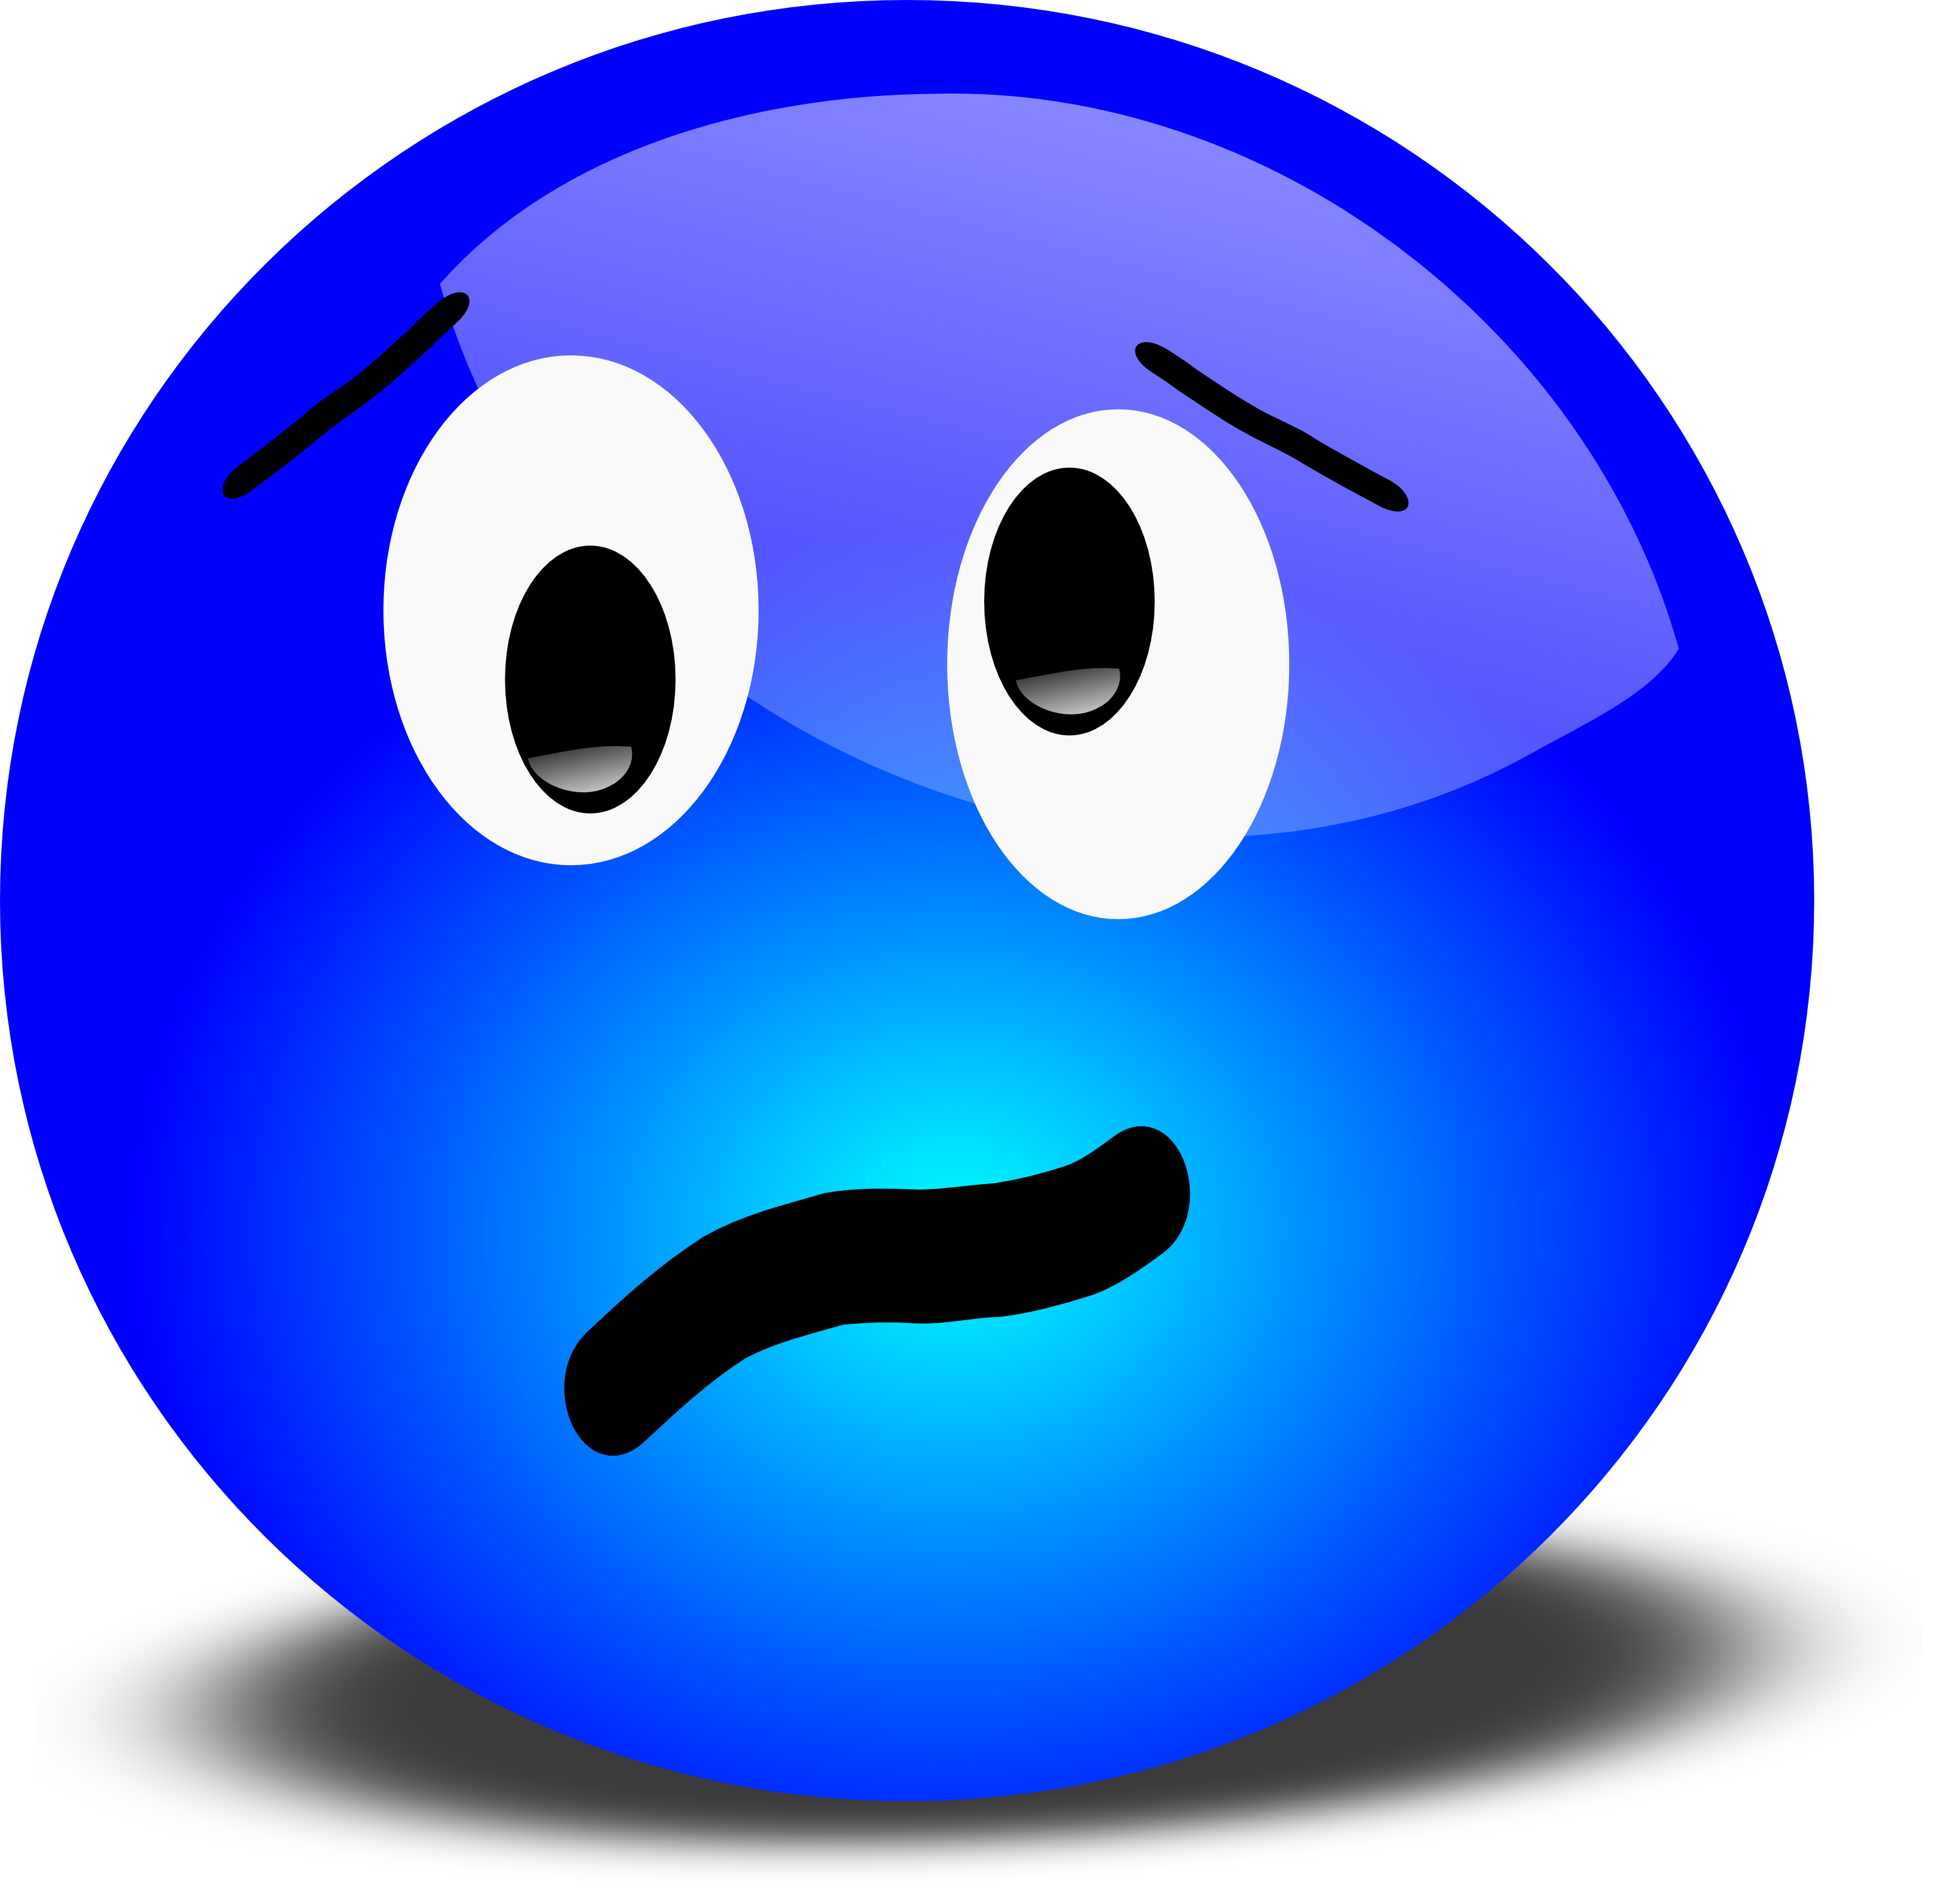 Sad smiley faces clip art clipartfox 3